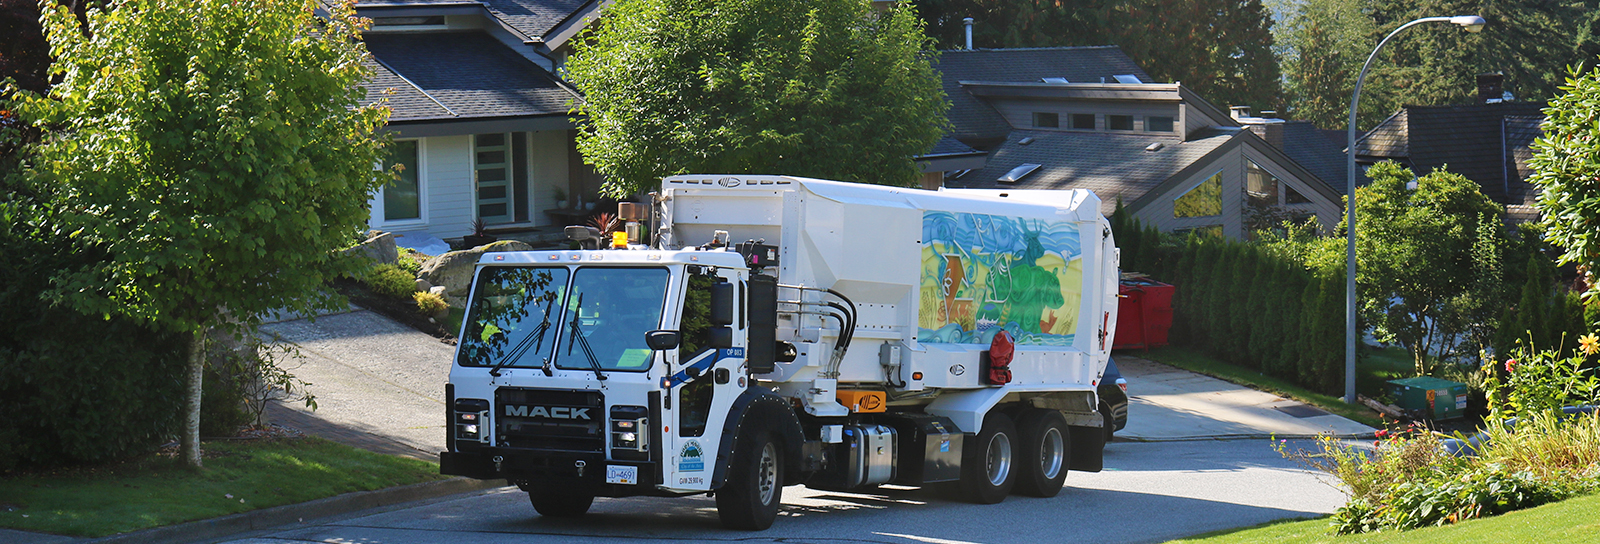 Solid waste collection truck picking up waste in a neighbourhood